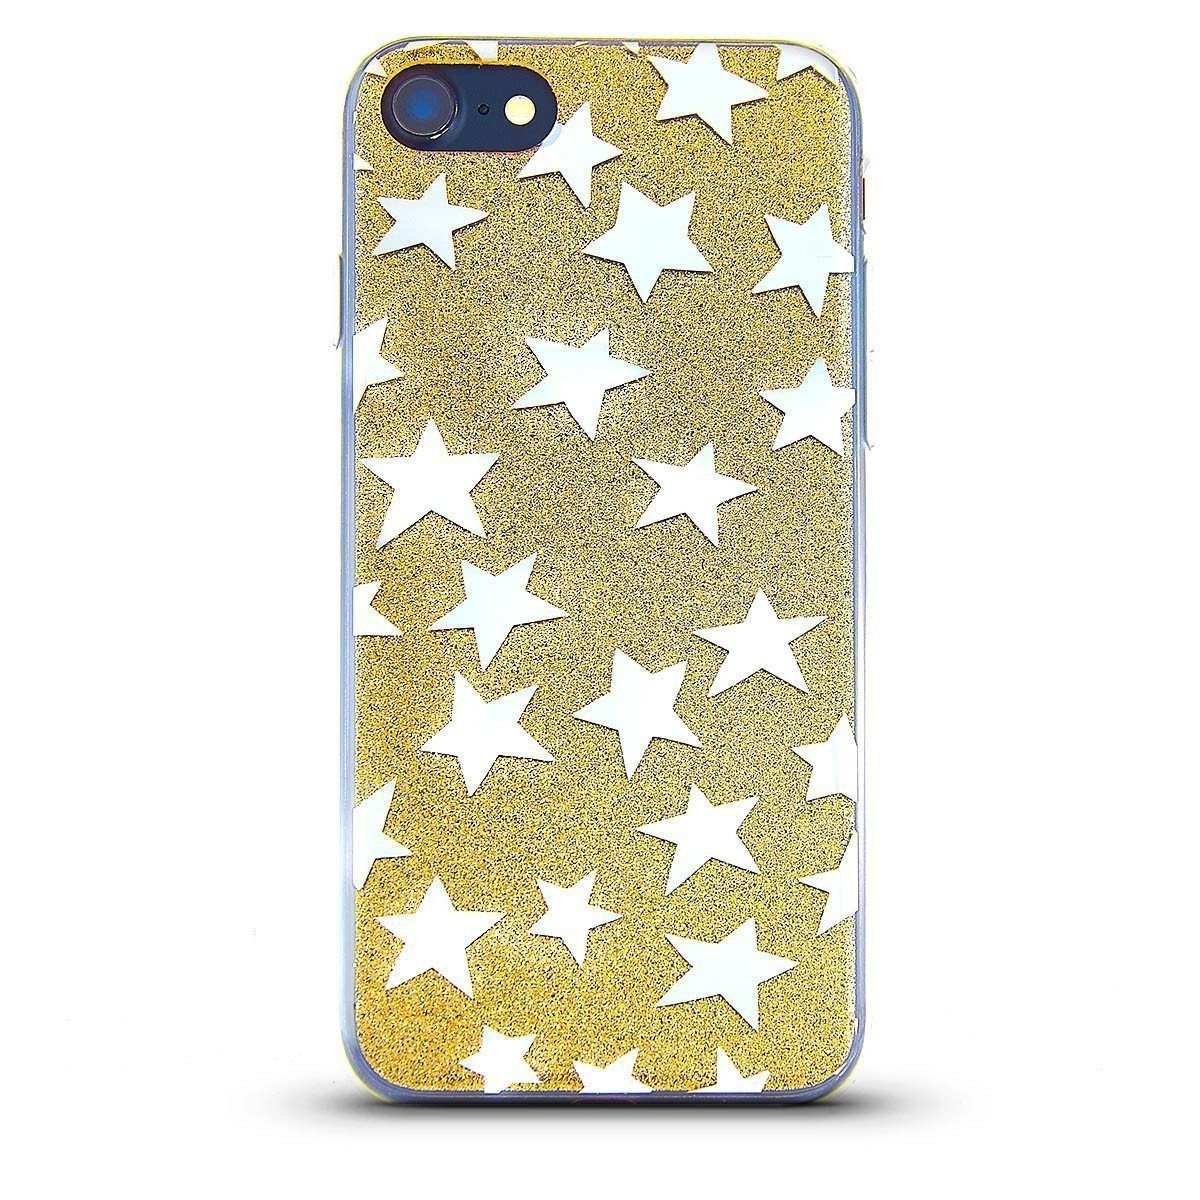 Sparkle Case for iPhone 7 /8 - Gold Star